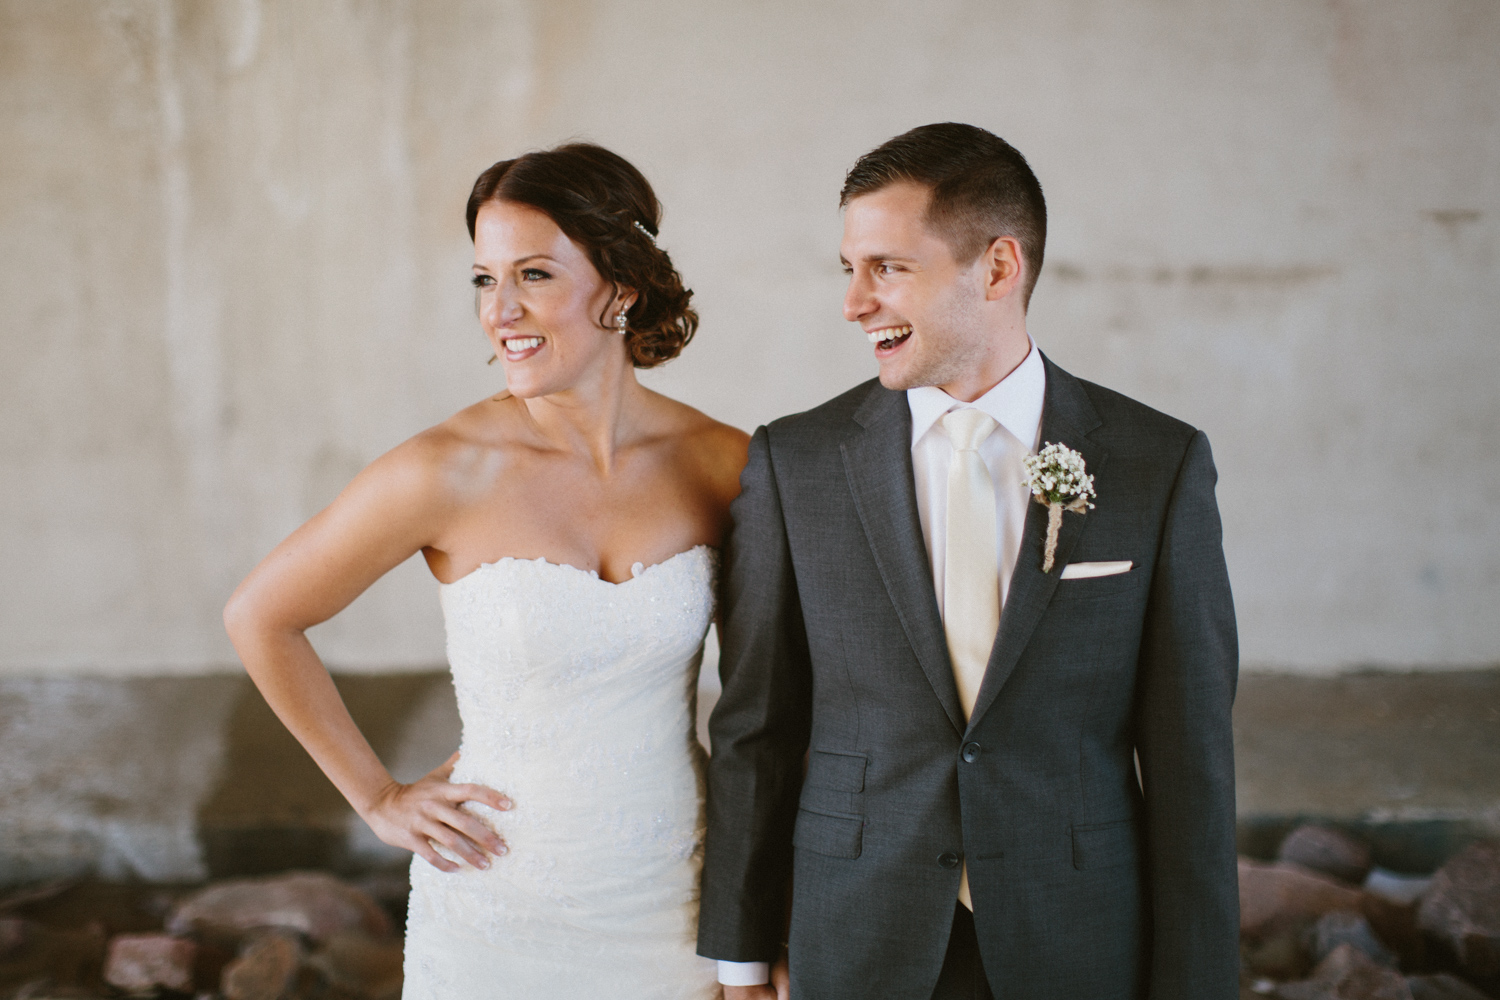 israel&aubrey_siouxfalls_wedding_photographer_43.jpg